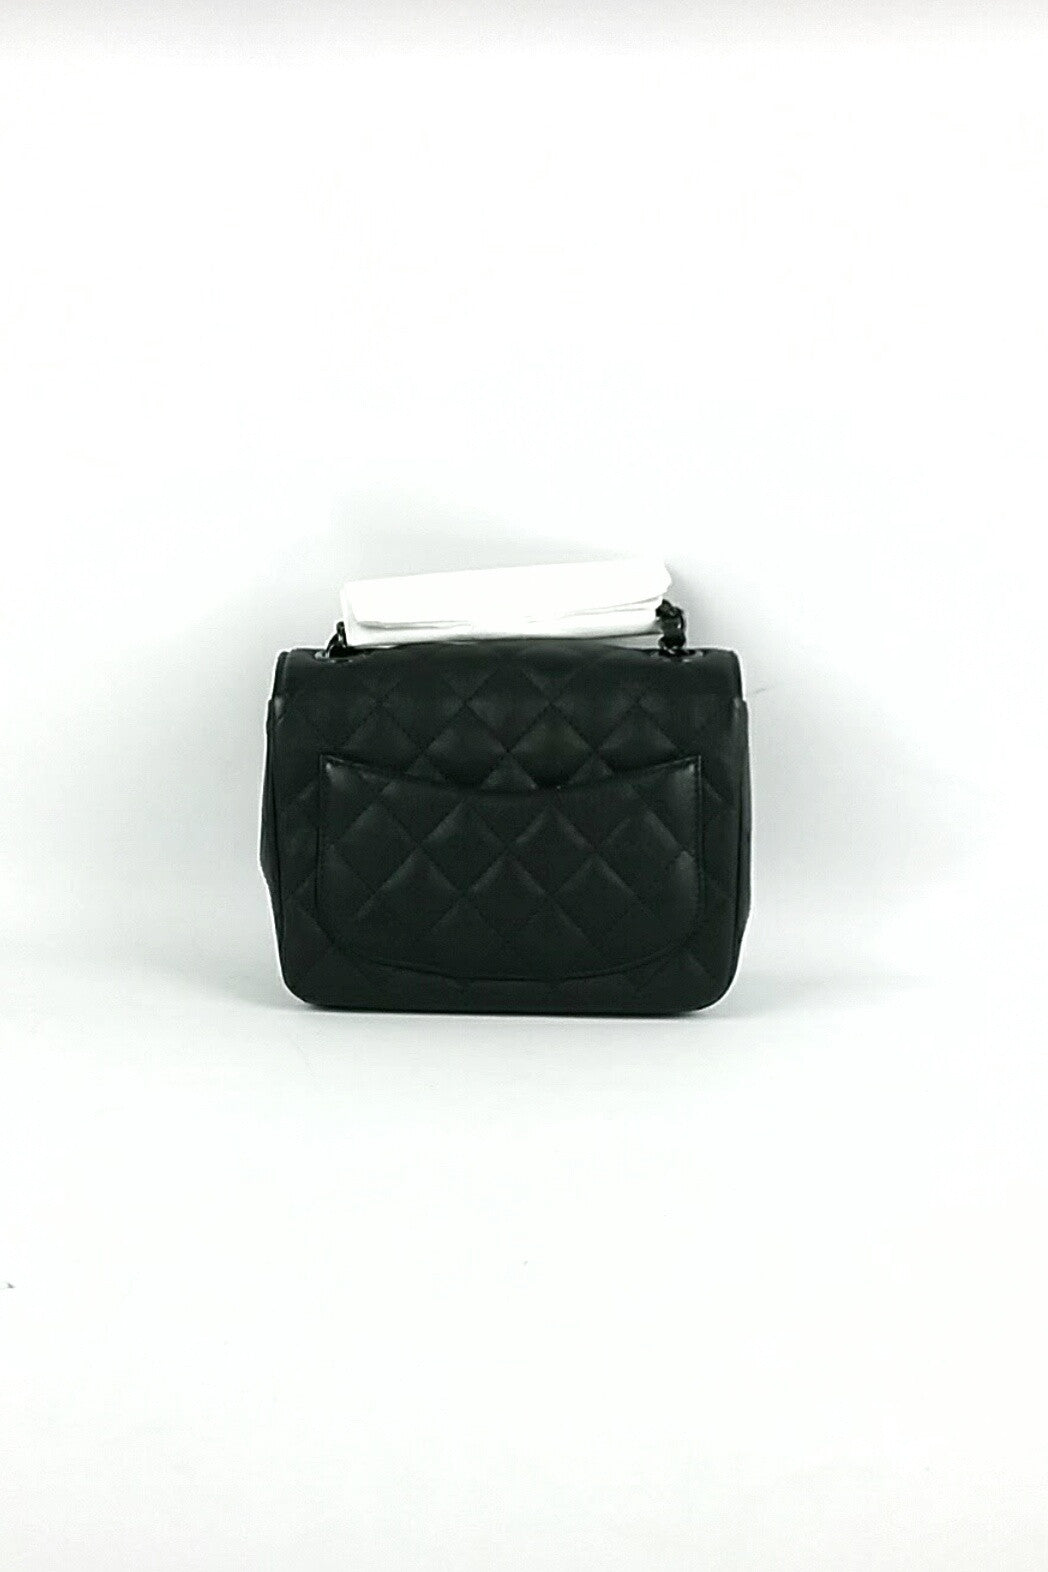 Caviar So Black Mini Flap Bag